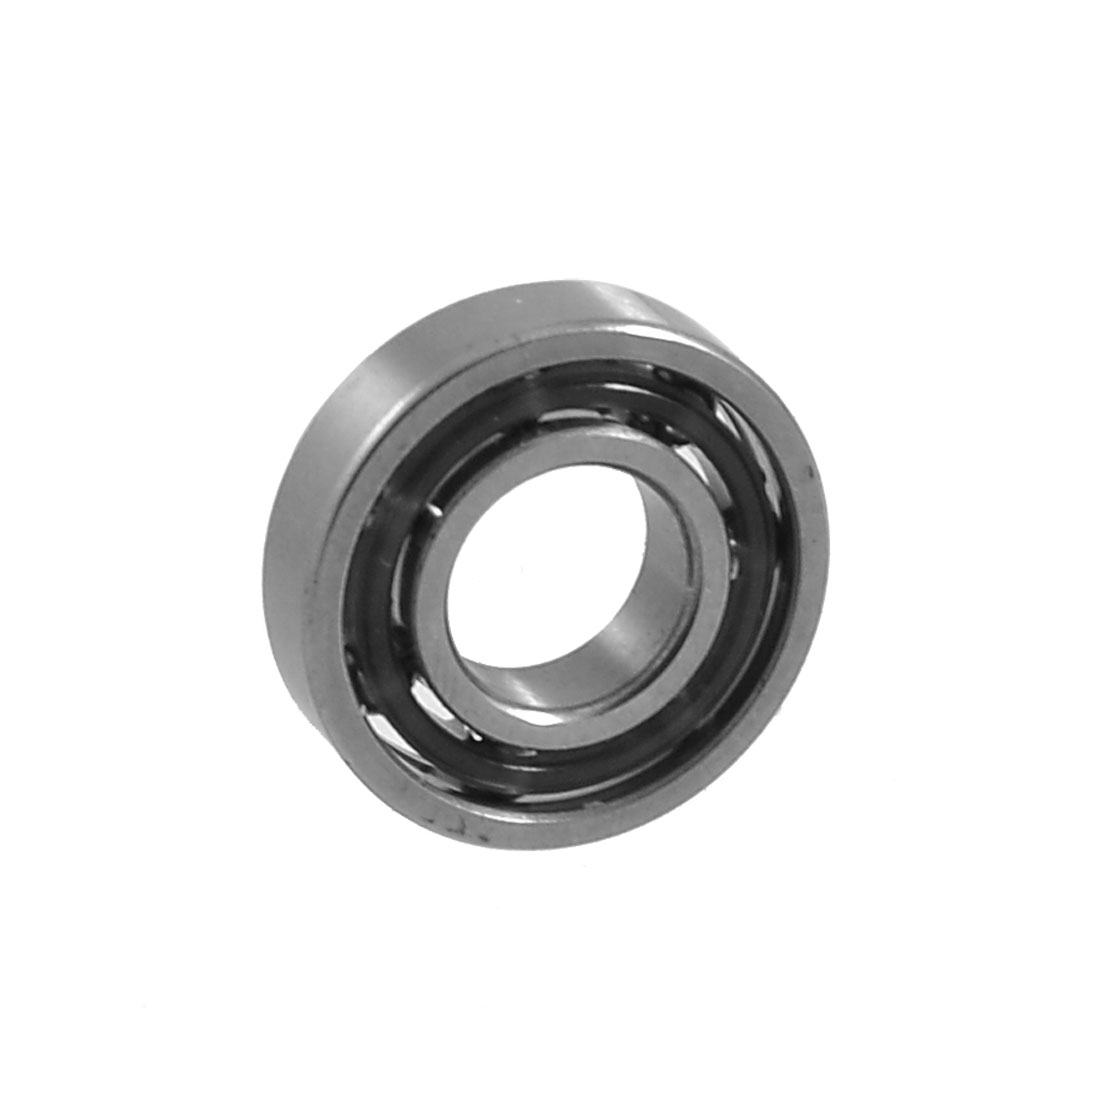 9mm x 20mm x 5mm Deep Groove Ball Bearing for Bosch 26 Electric Hammer